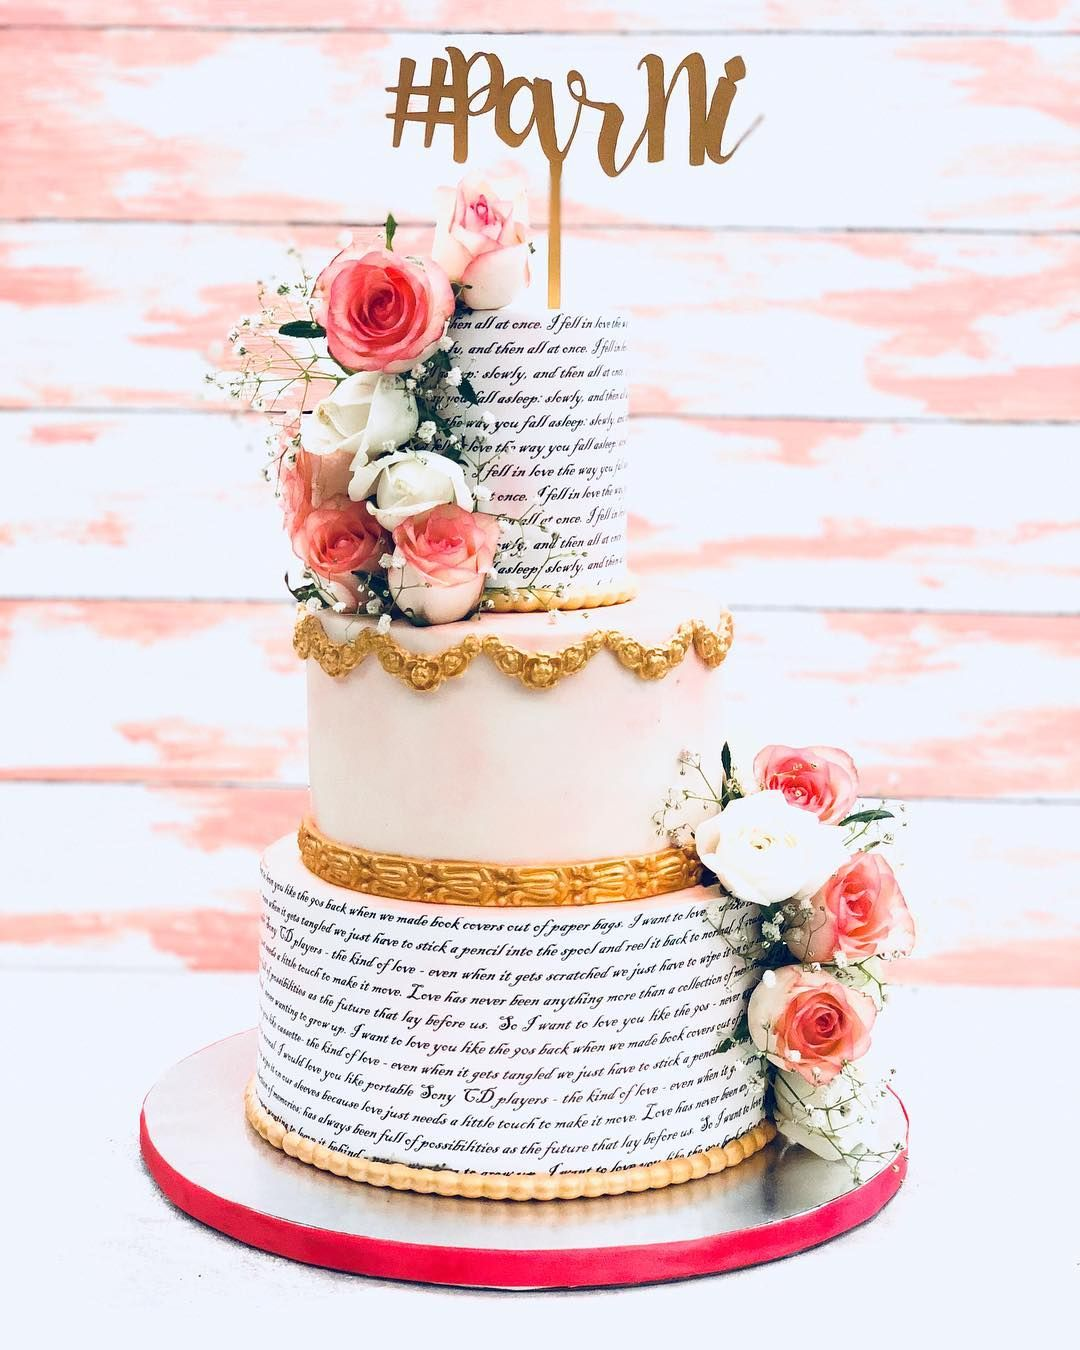 13 Awesome Engagement Cake Designs We Spotted By Indian Bakers The Urban Guide Engagement Cake Design Cake Designs Big Wedding Cakes